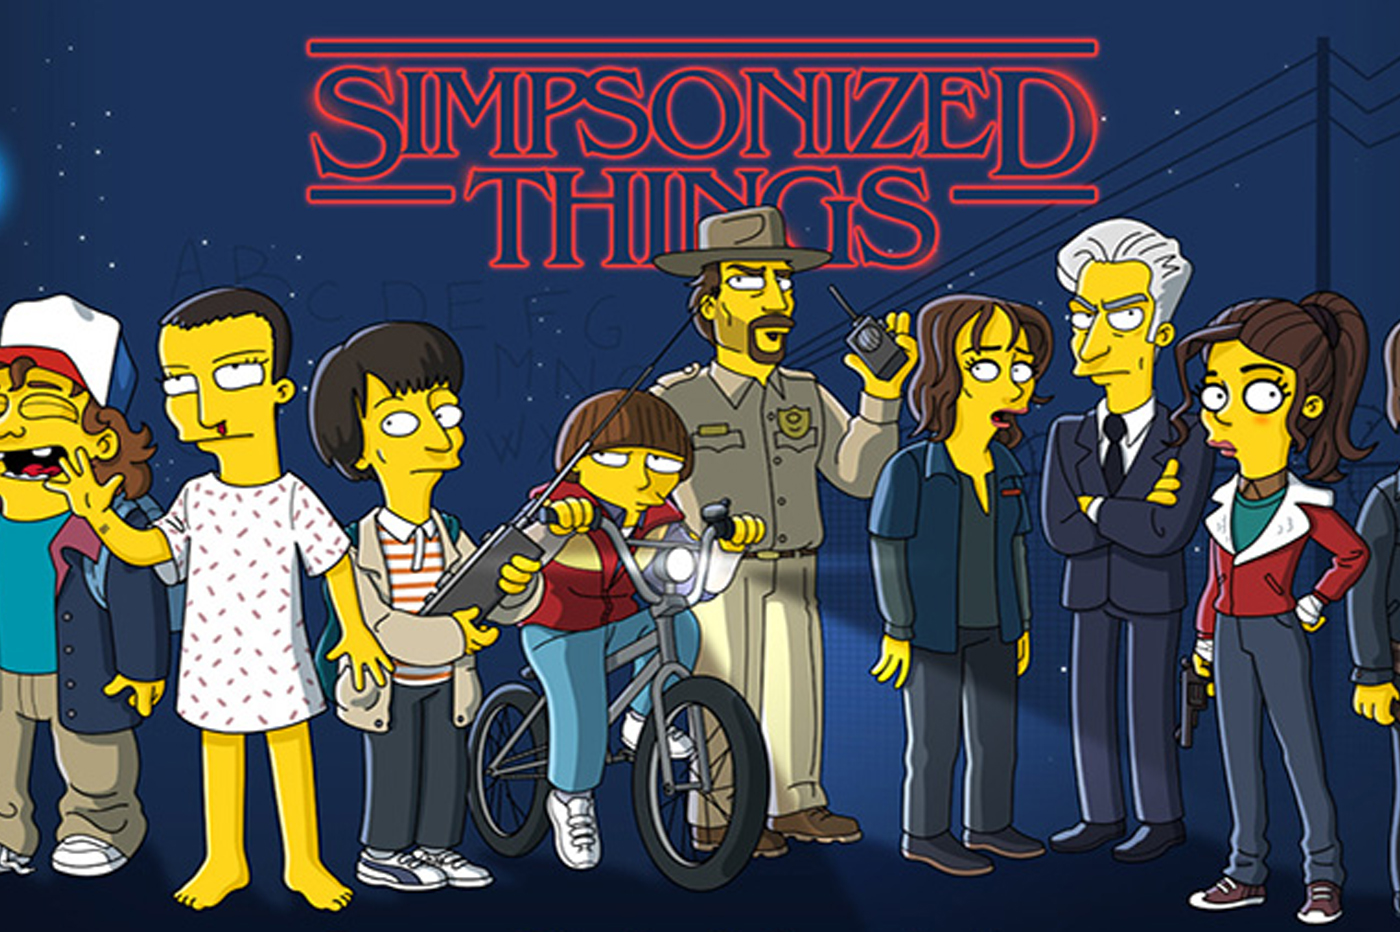 Simpson Stranger Things